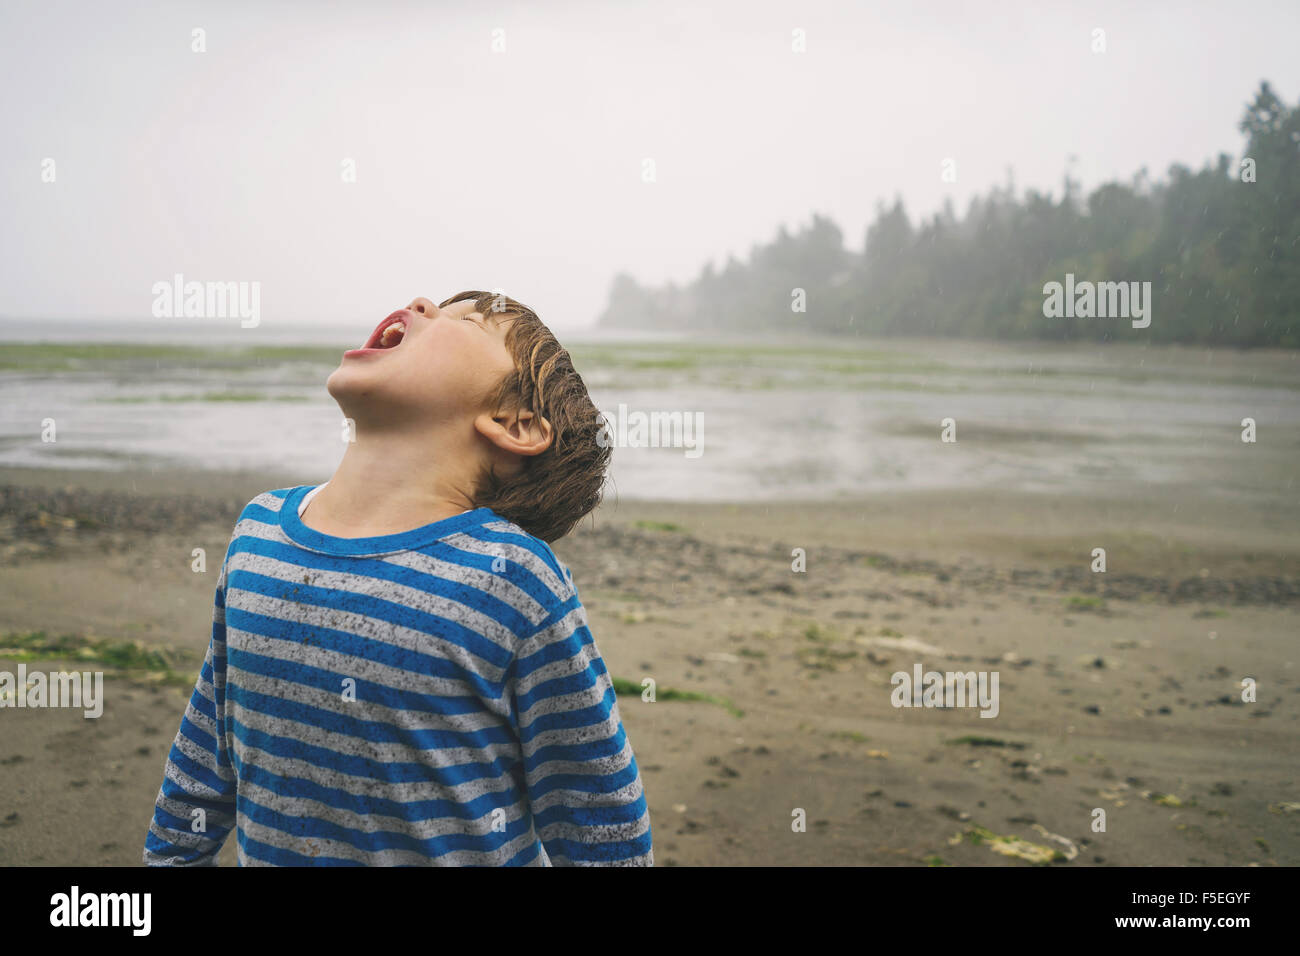 Boy with his head tilted back catching rain in mouth - Stock Image